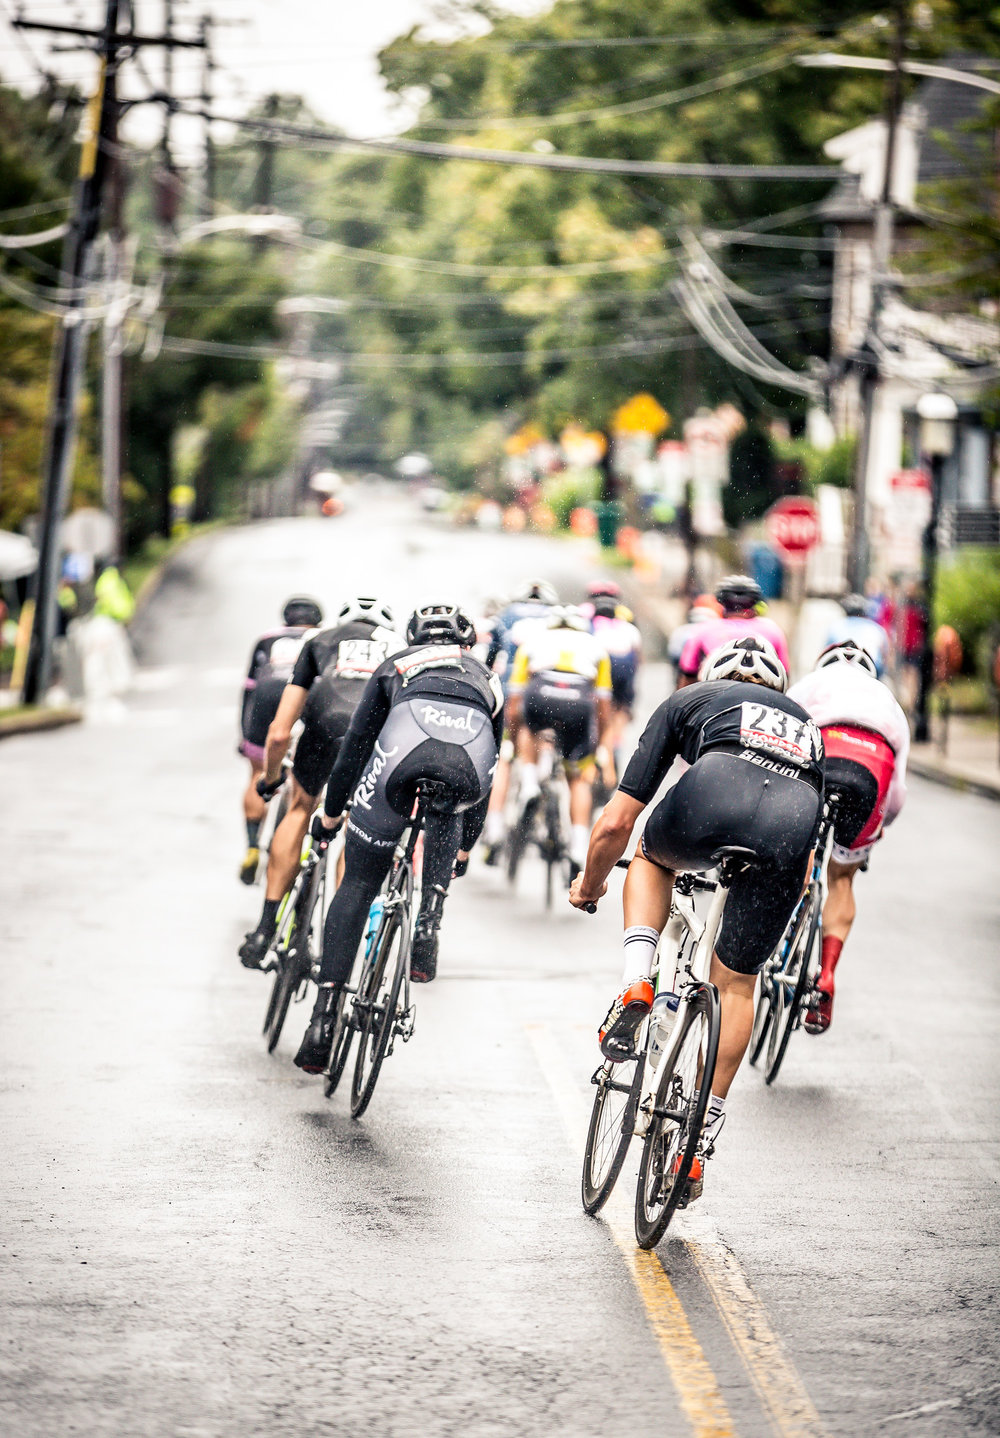 The Amateur 2/3 men racing down Ashland Street to start the Bucks County Classic schedule.